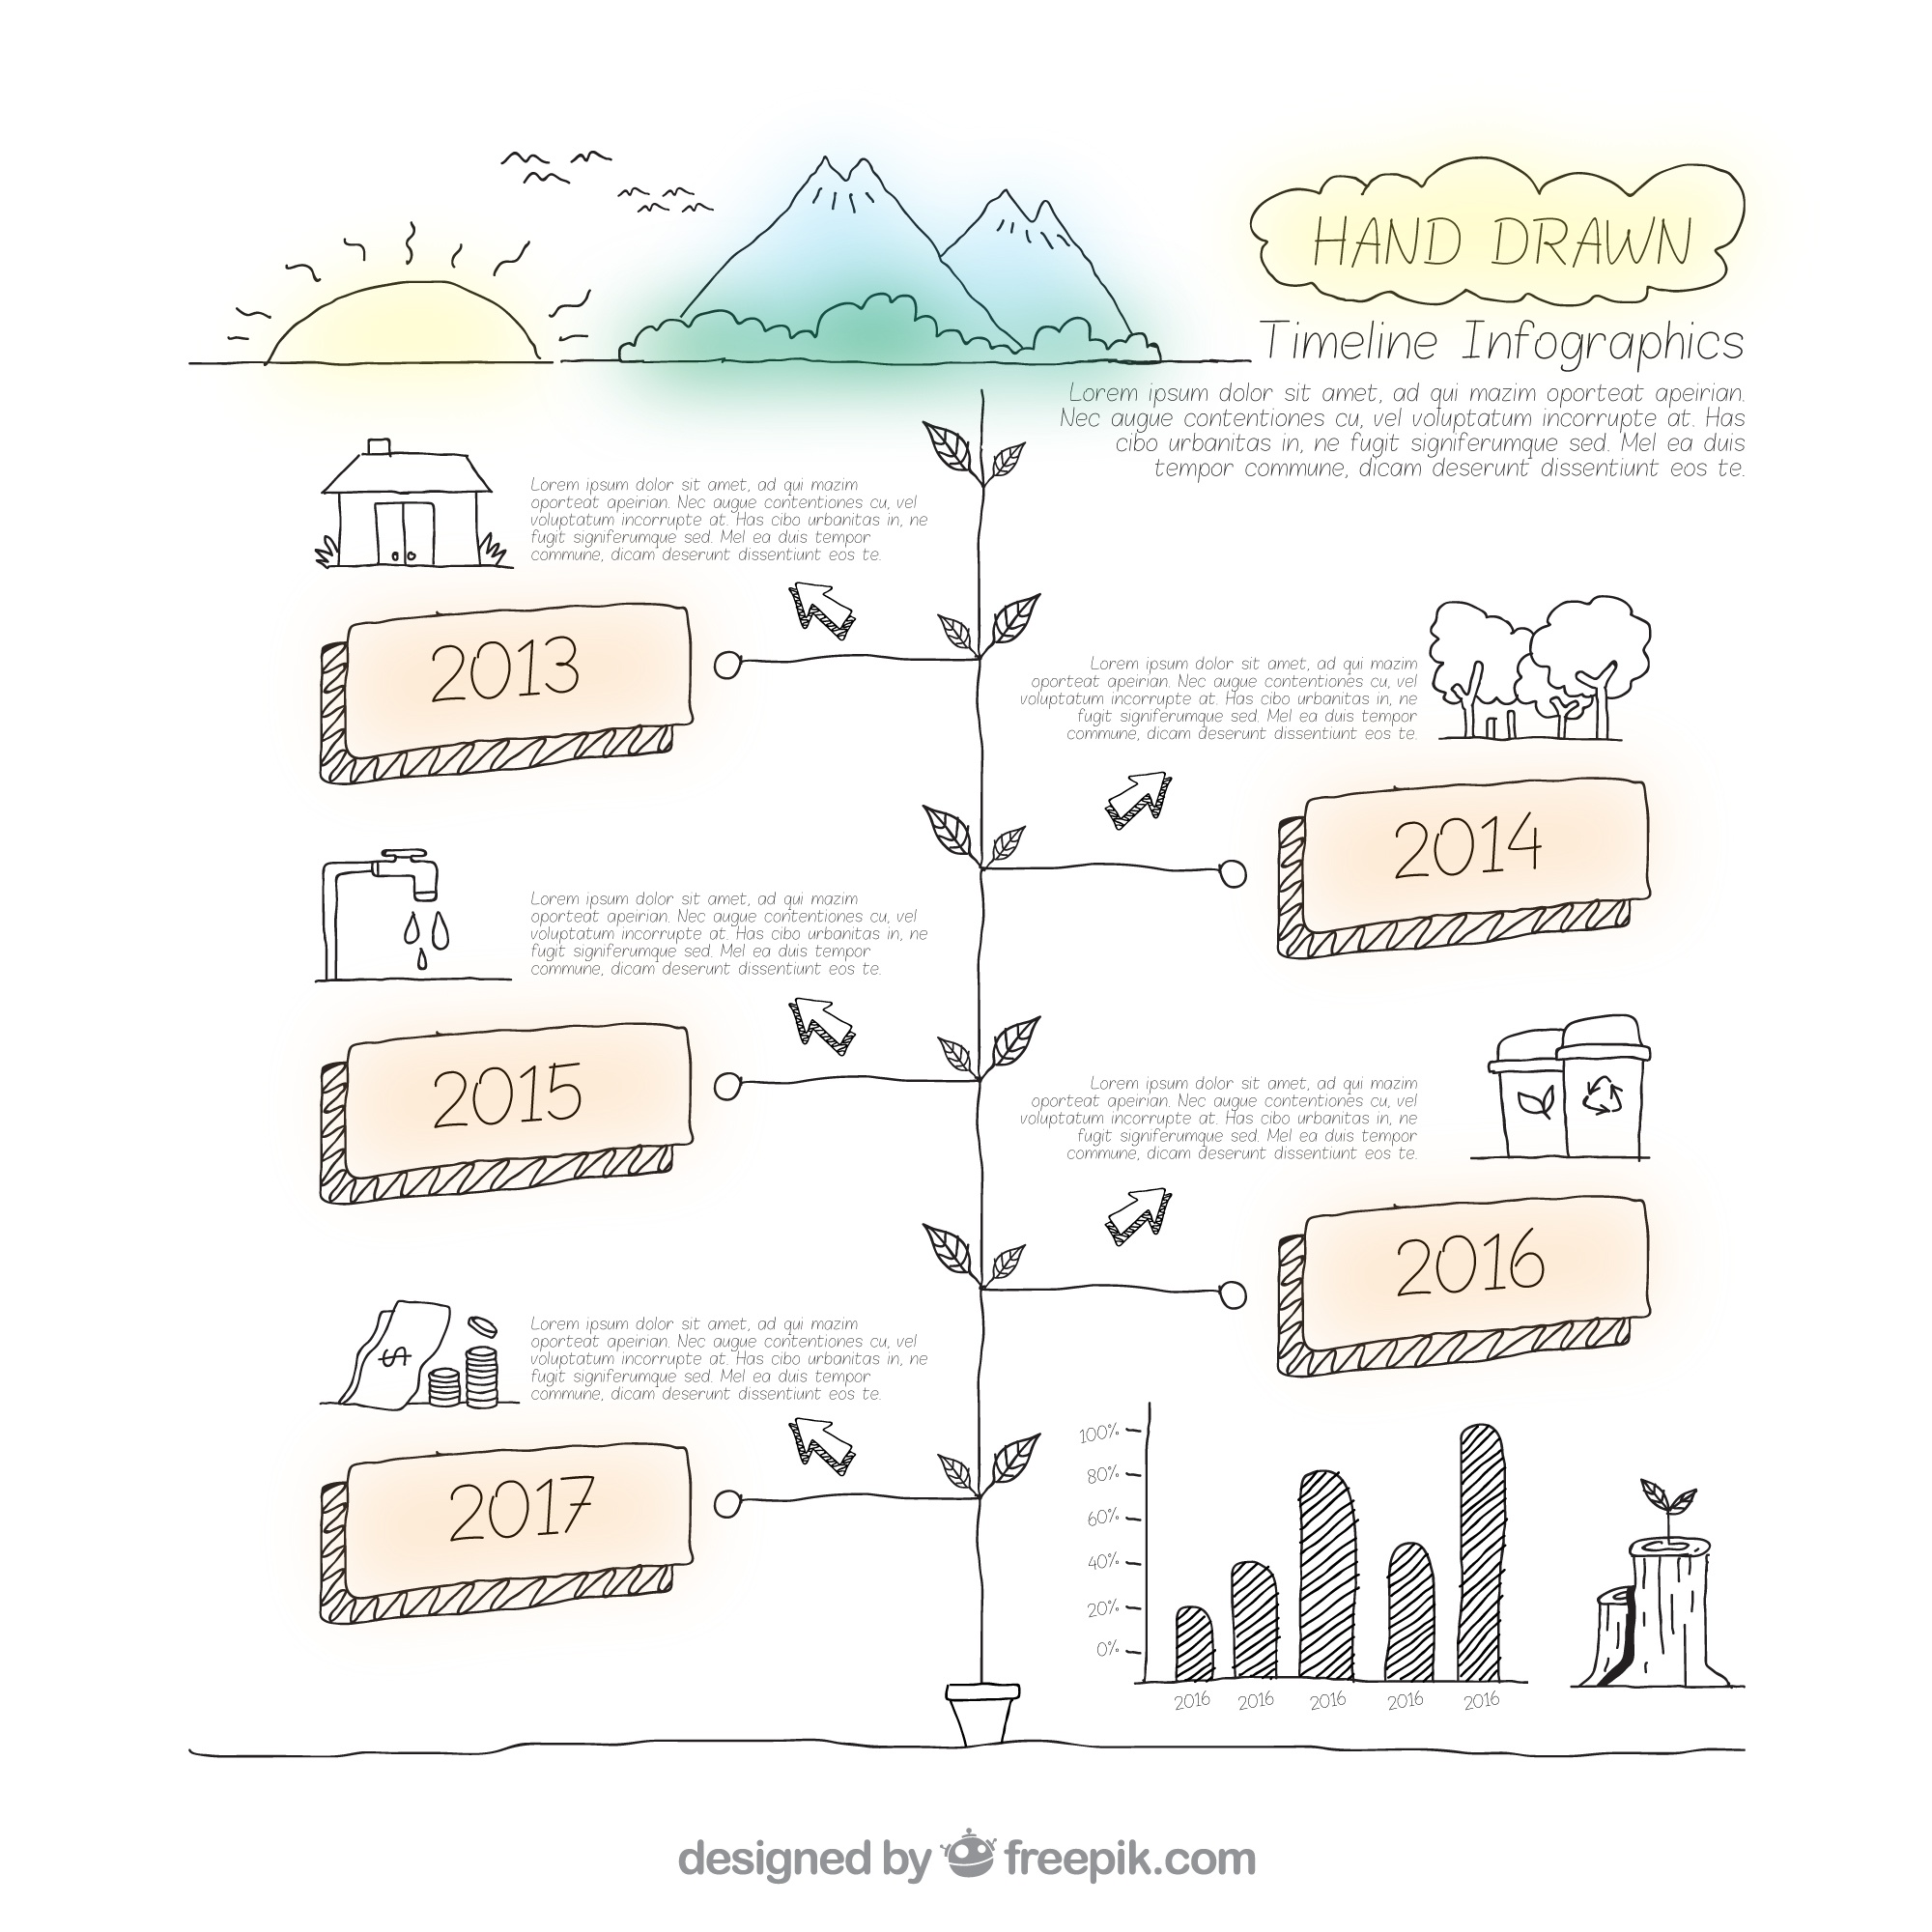 Timeline infographic with hand-drawn plant